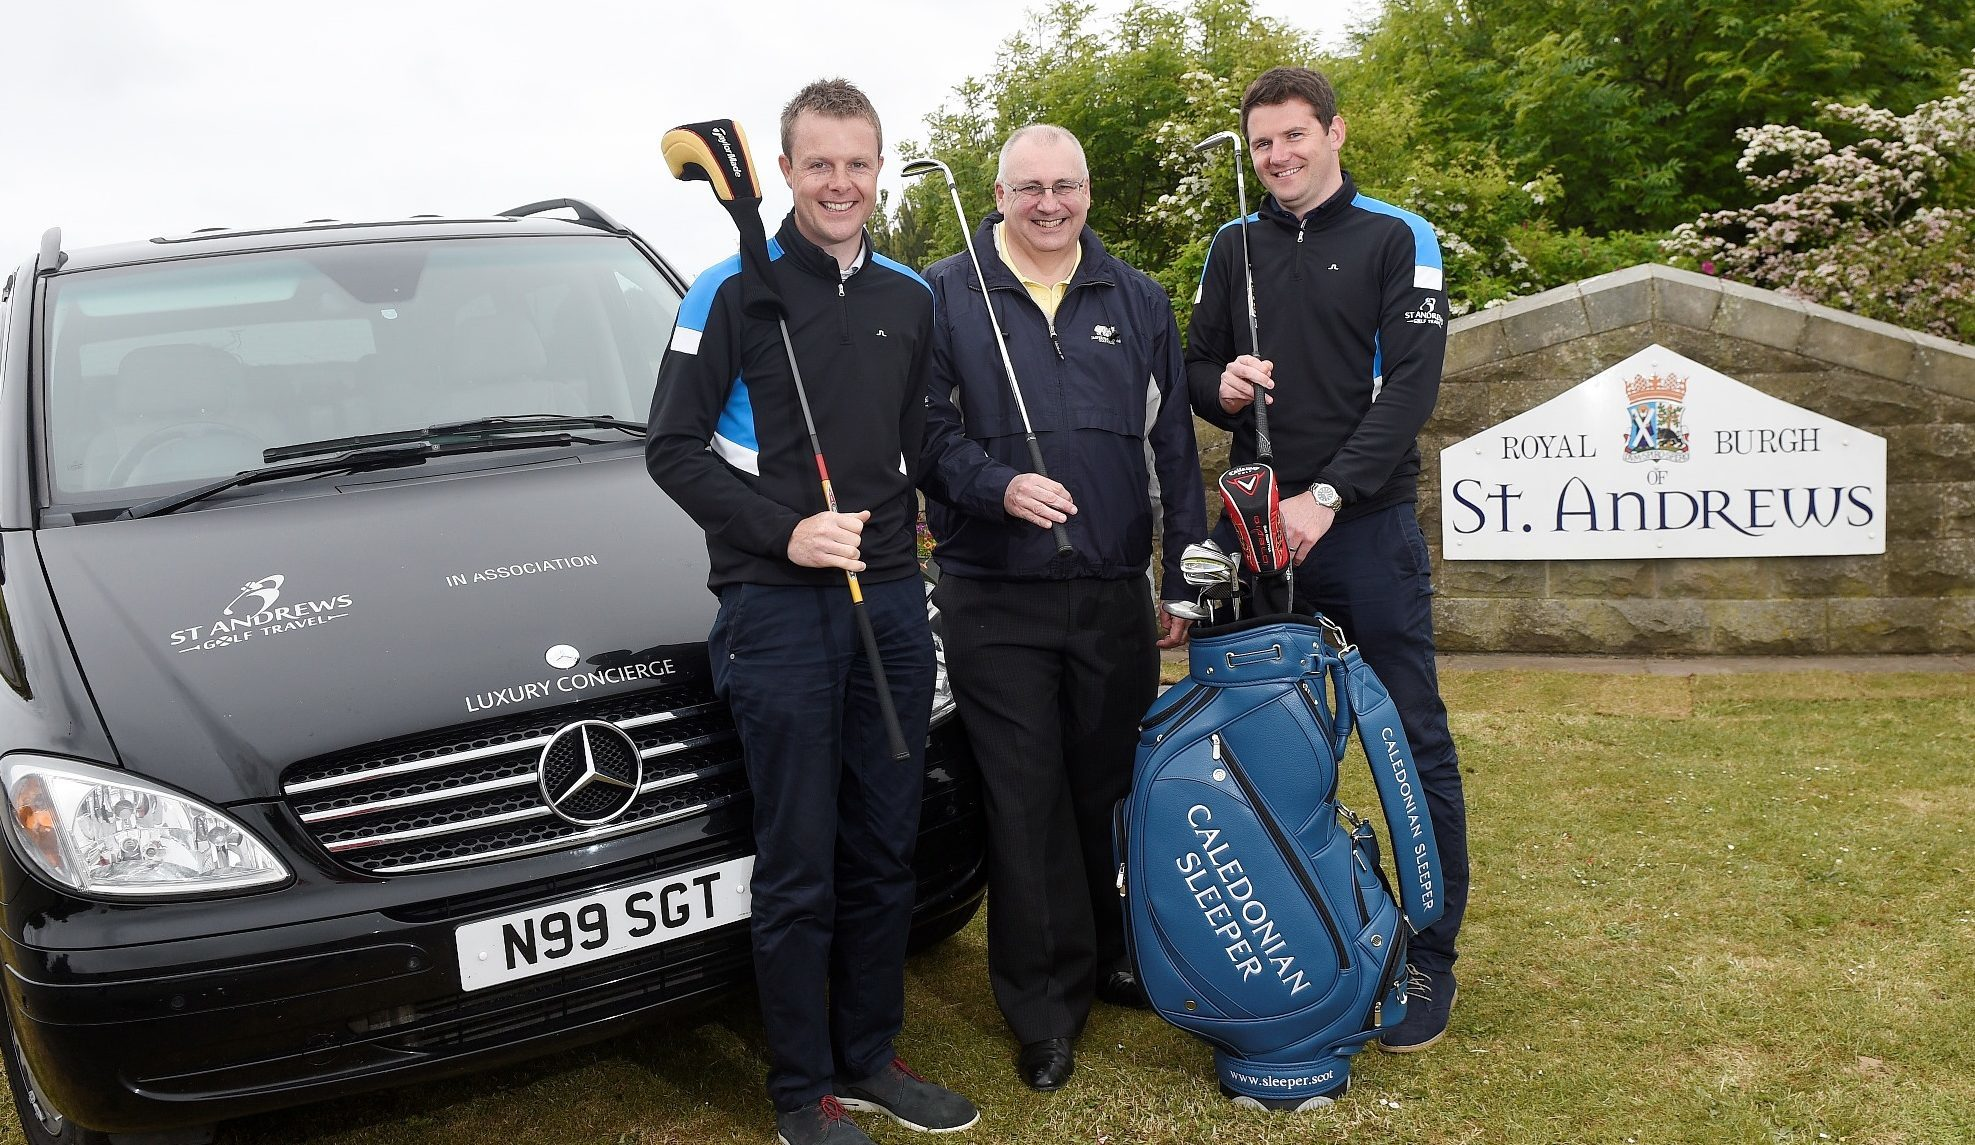 Peter Strachan, managing director of the Caledonian Sleeper, is pictured with Marc Gentles and Graeme Dawson of St Andrews Golf Travel.